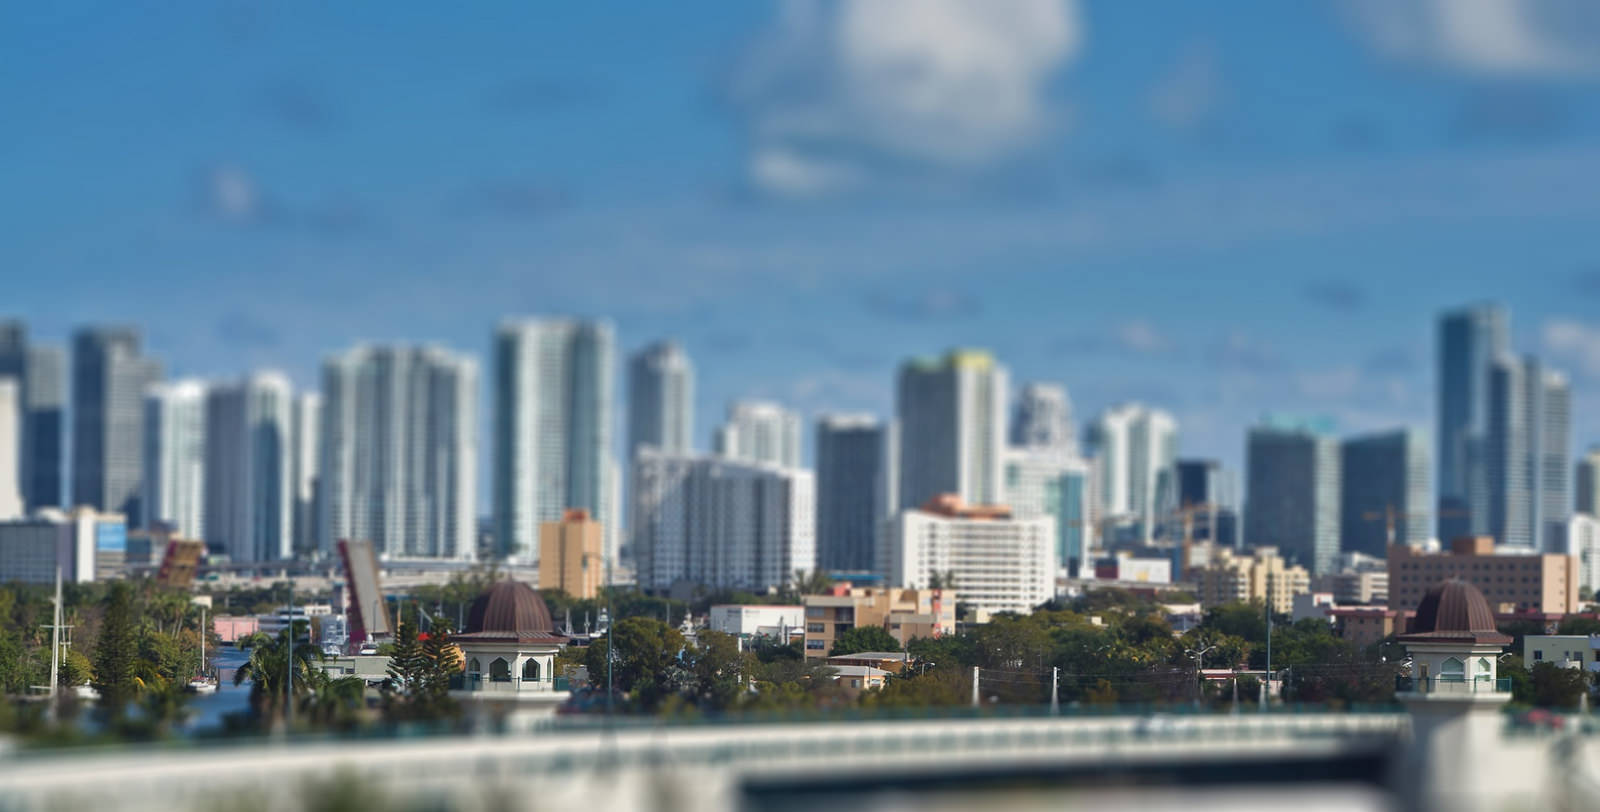 7,500 People Move To Miami-Dade County Every Month